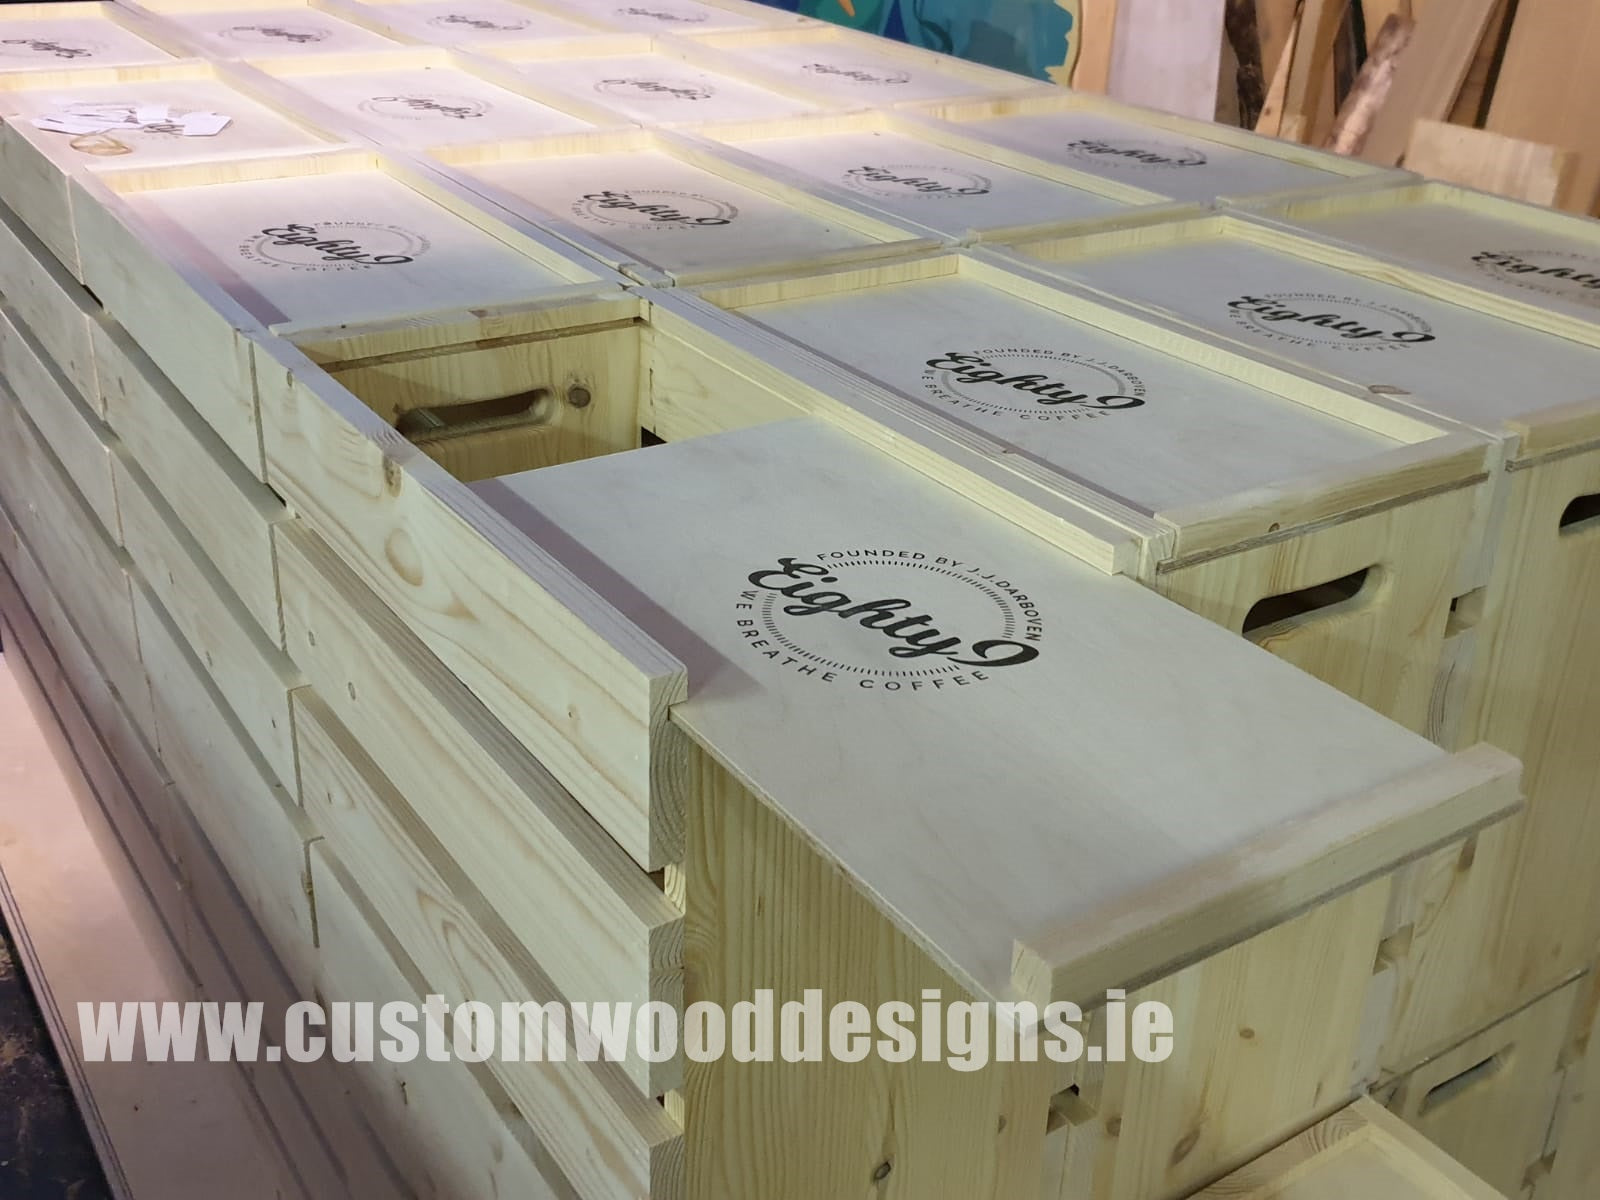 producy crates crates custom wood designs retail display crates display retail boxes old fashioned rustic brown crates white crates brandded crates dubklin crates irish crates vegetable shop crate box handle crates with dublin irealnd irish mass sproduced wholesale display retail strong crates branded laser engraved crates and boxes dublin irealnd